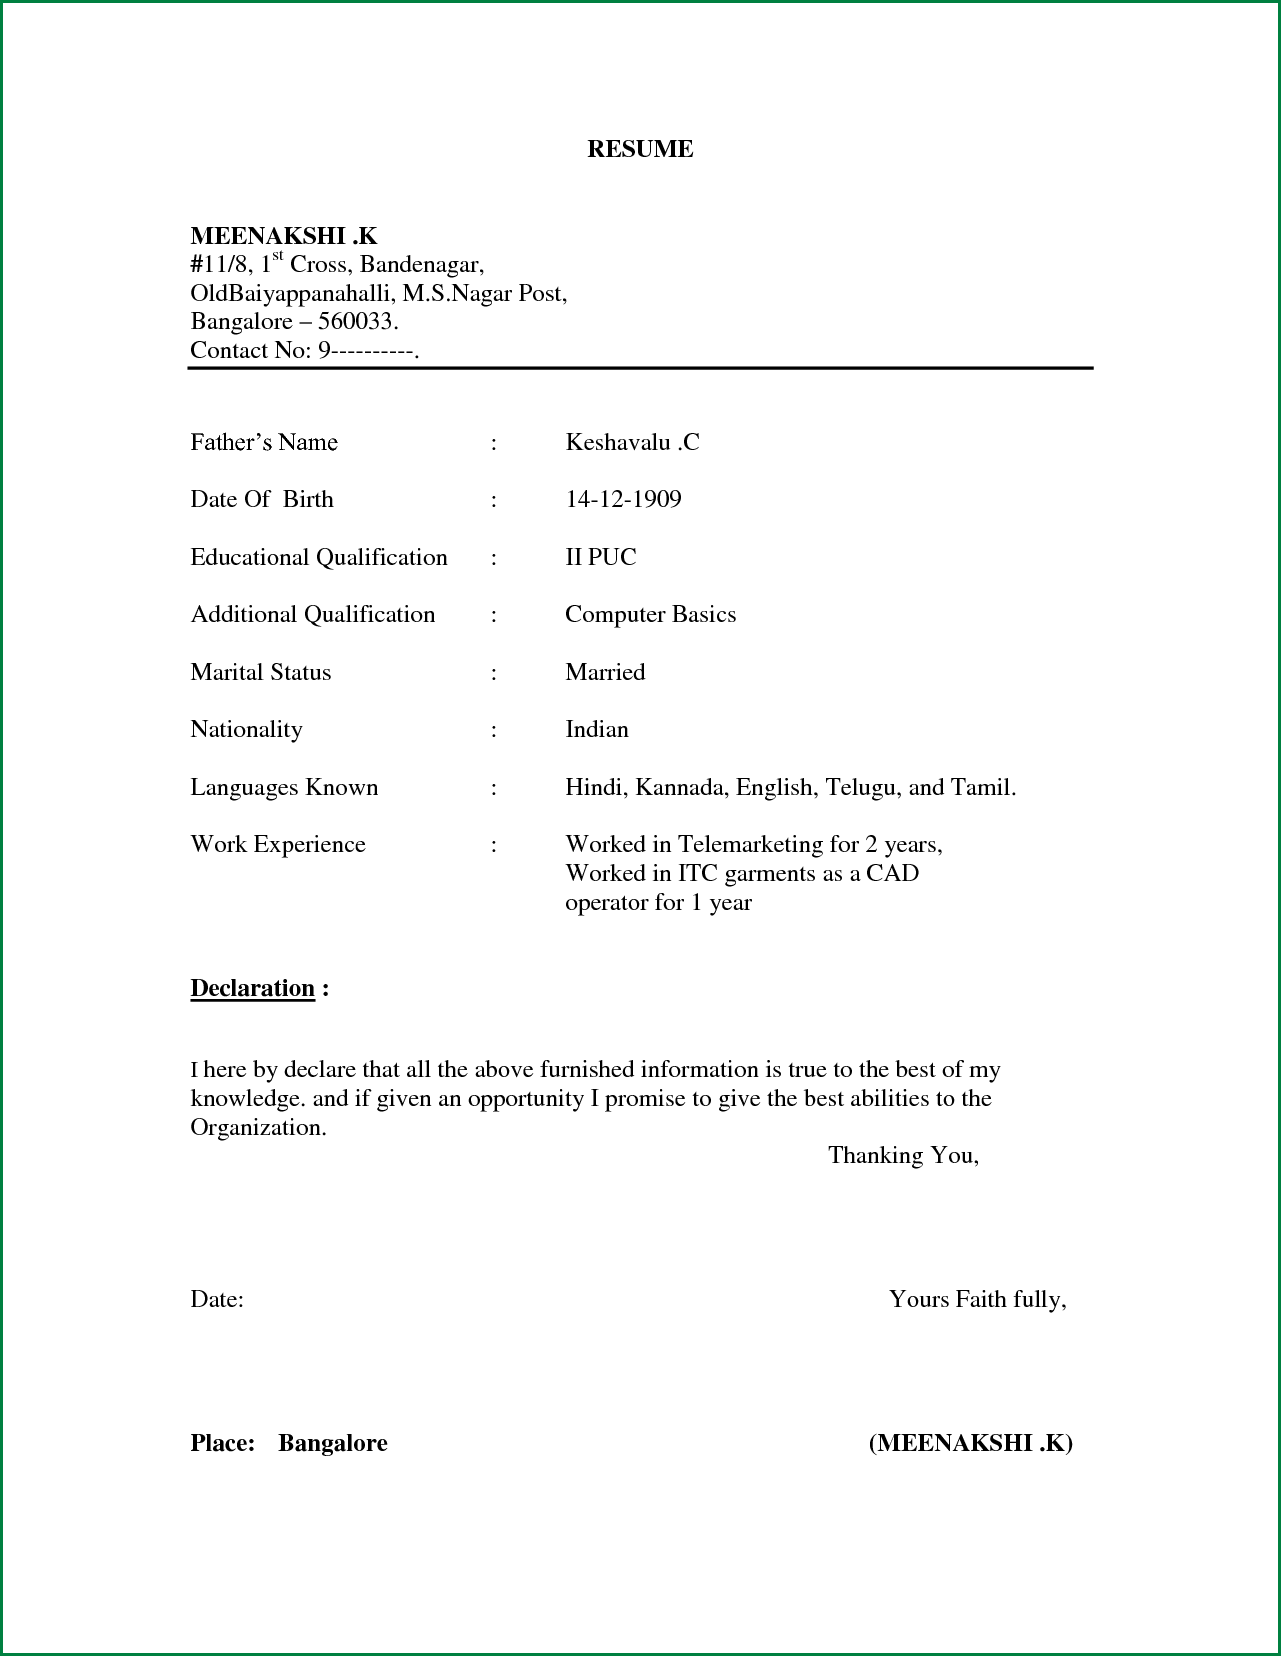 How To Make Simple Resume Simple Resume Format For Freshers In Word File 137085913